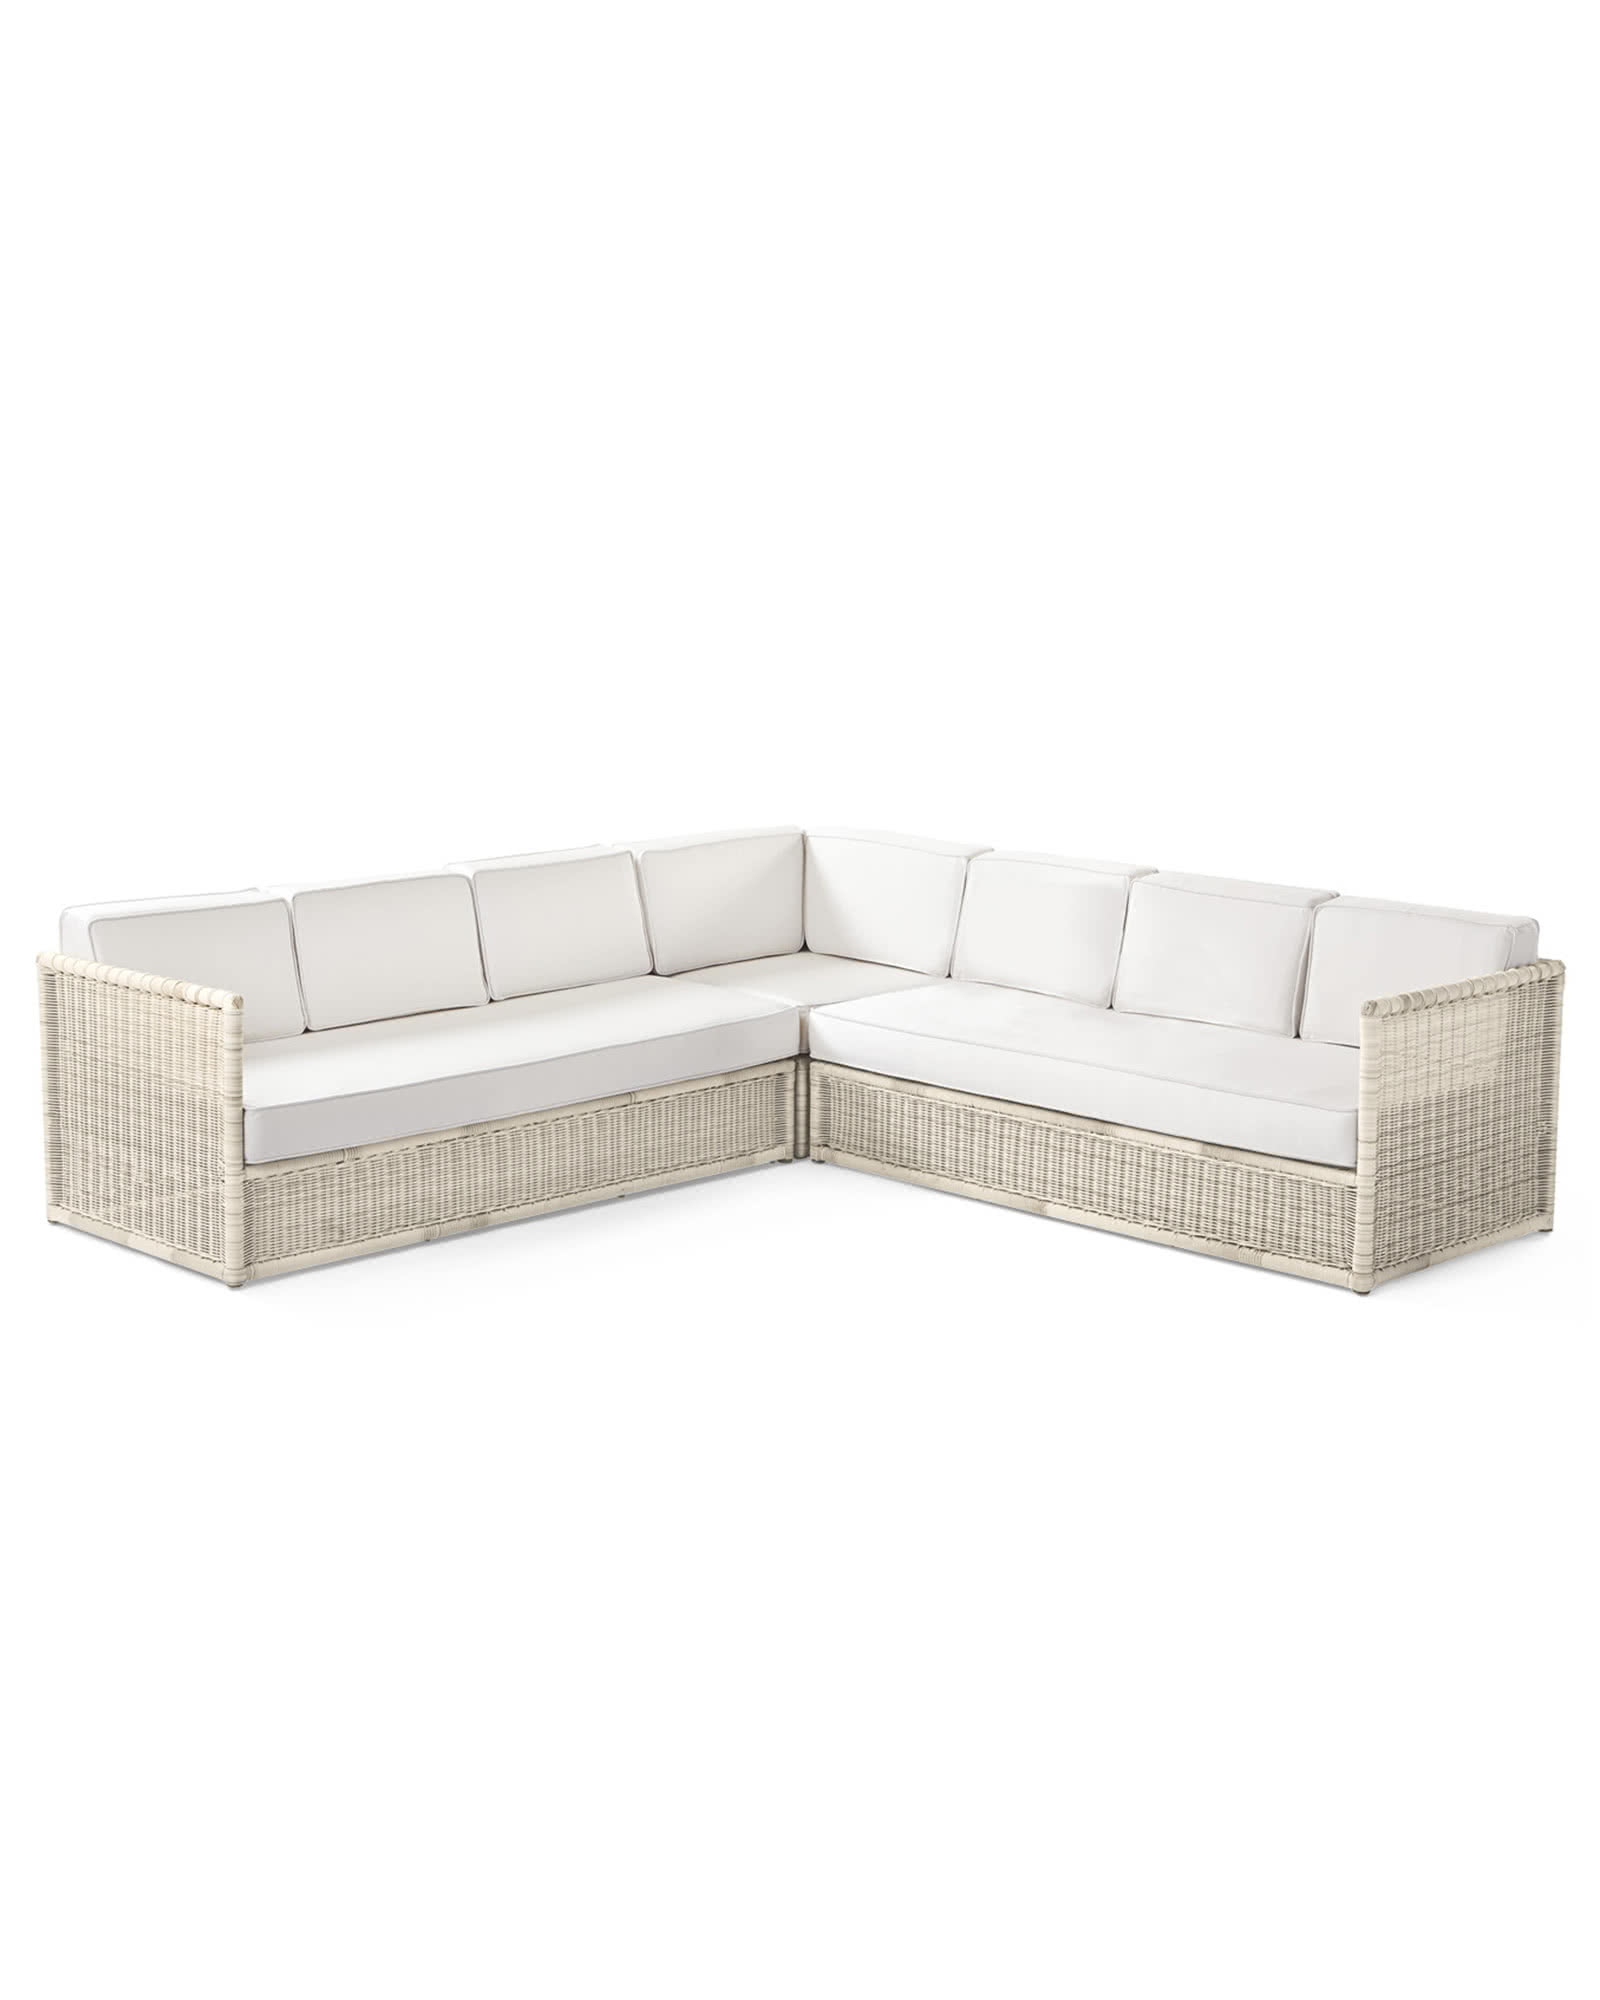 Furn_Pacifica_Sectional_Driftwood_White_Crop_SH.jpg